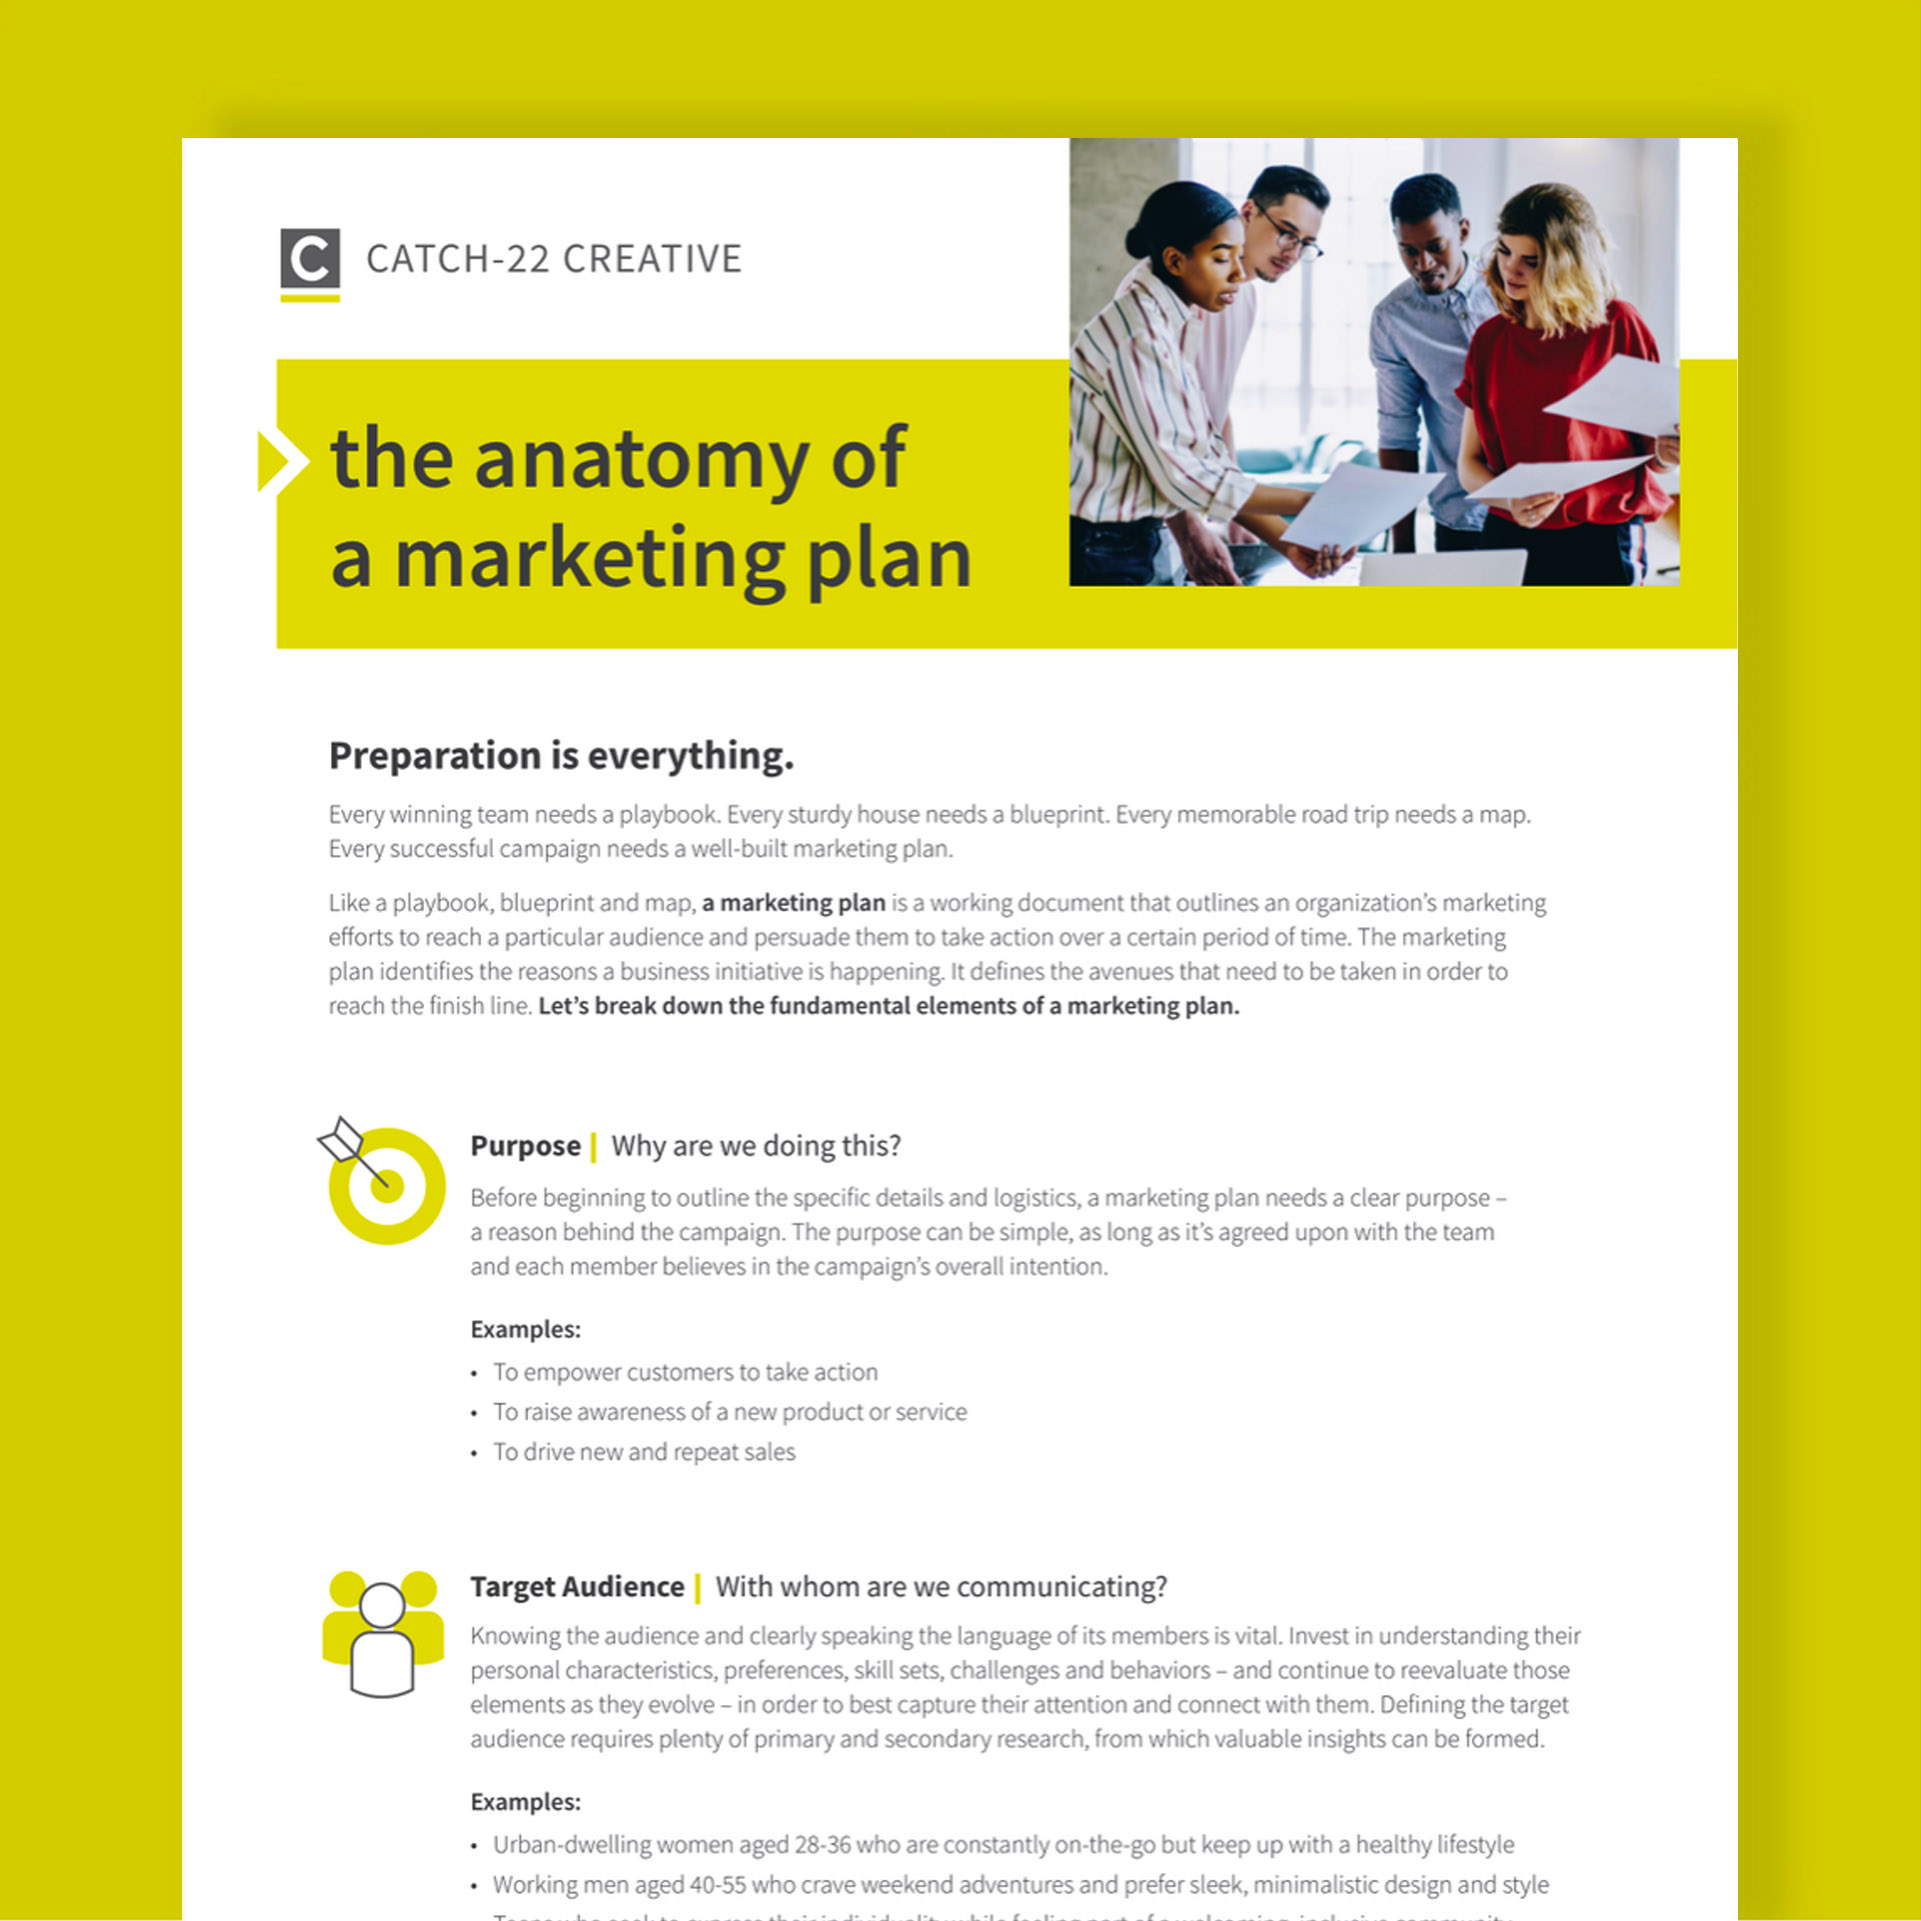 The Anatomy of a Marketing Plan